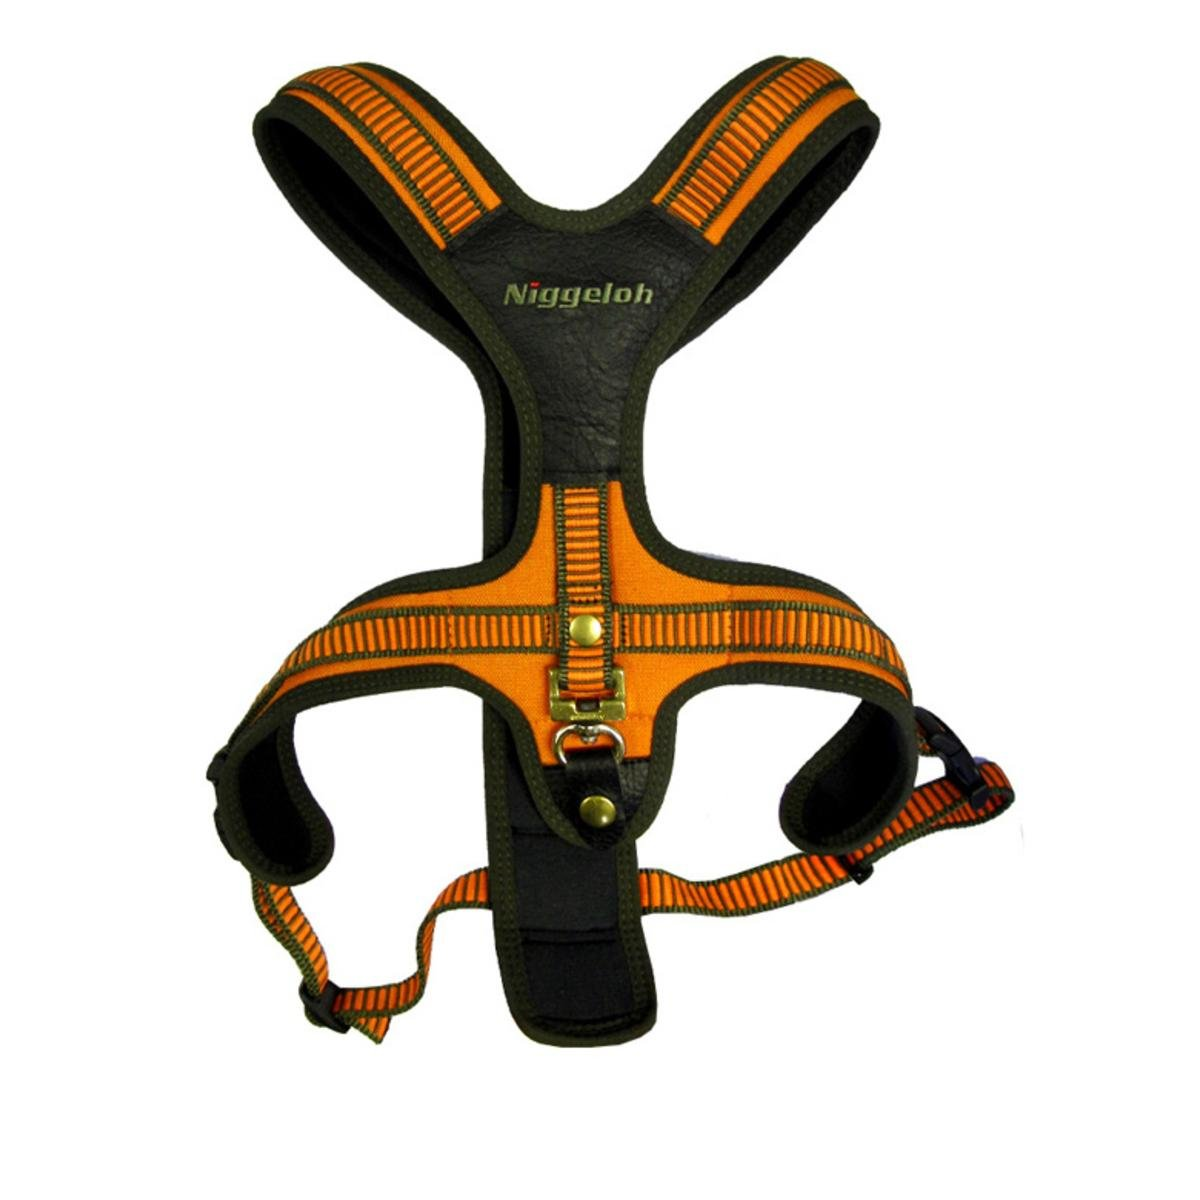 Niggeloh Blood Tracking Harness X-Small by Niggeloh